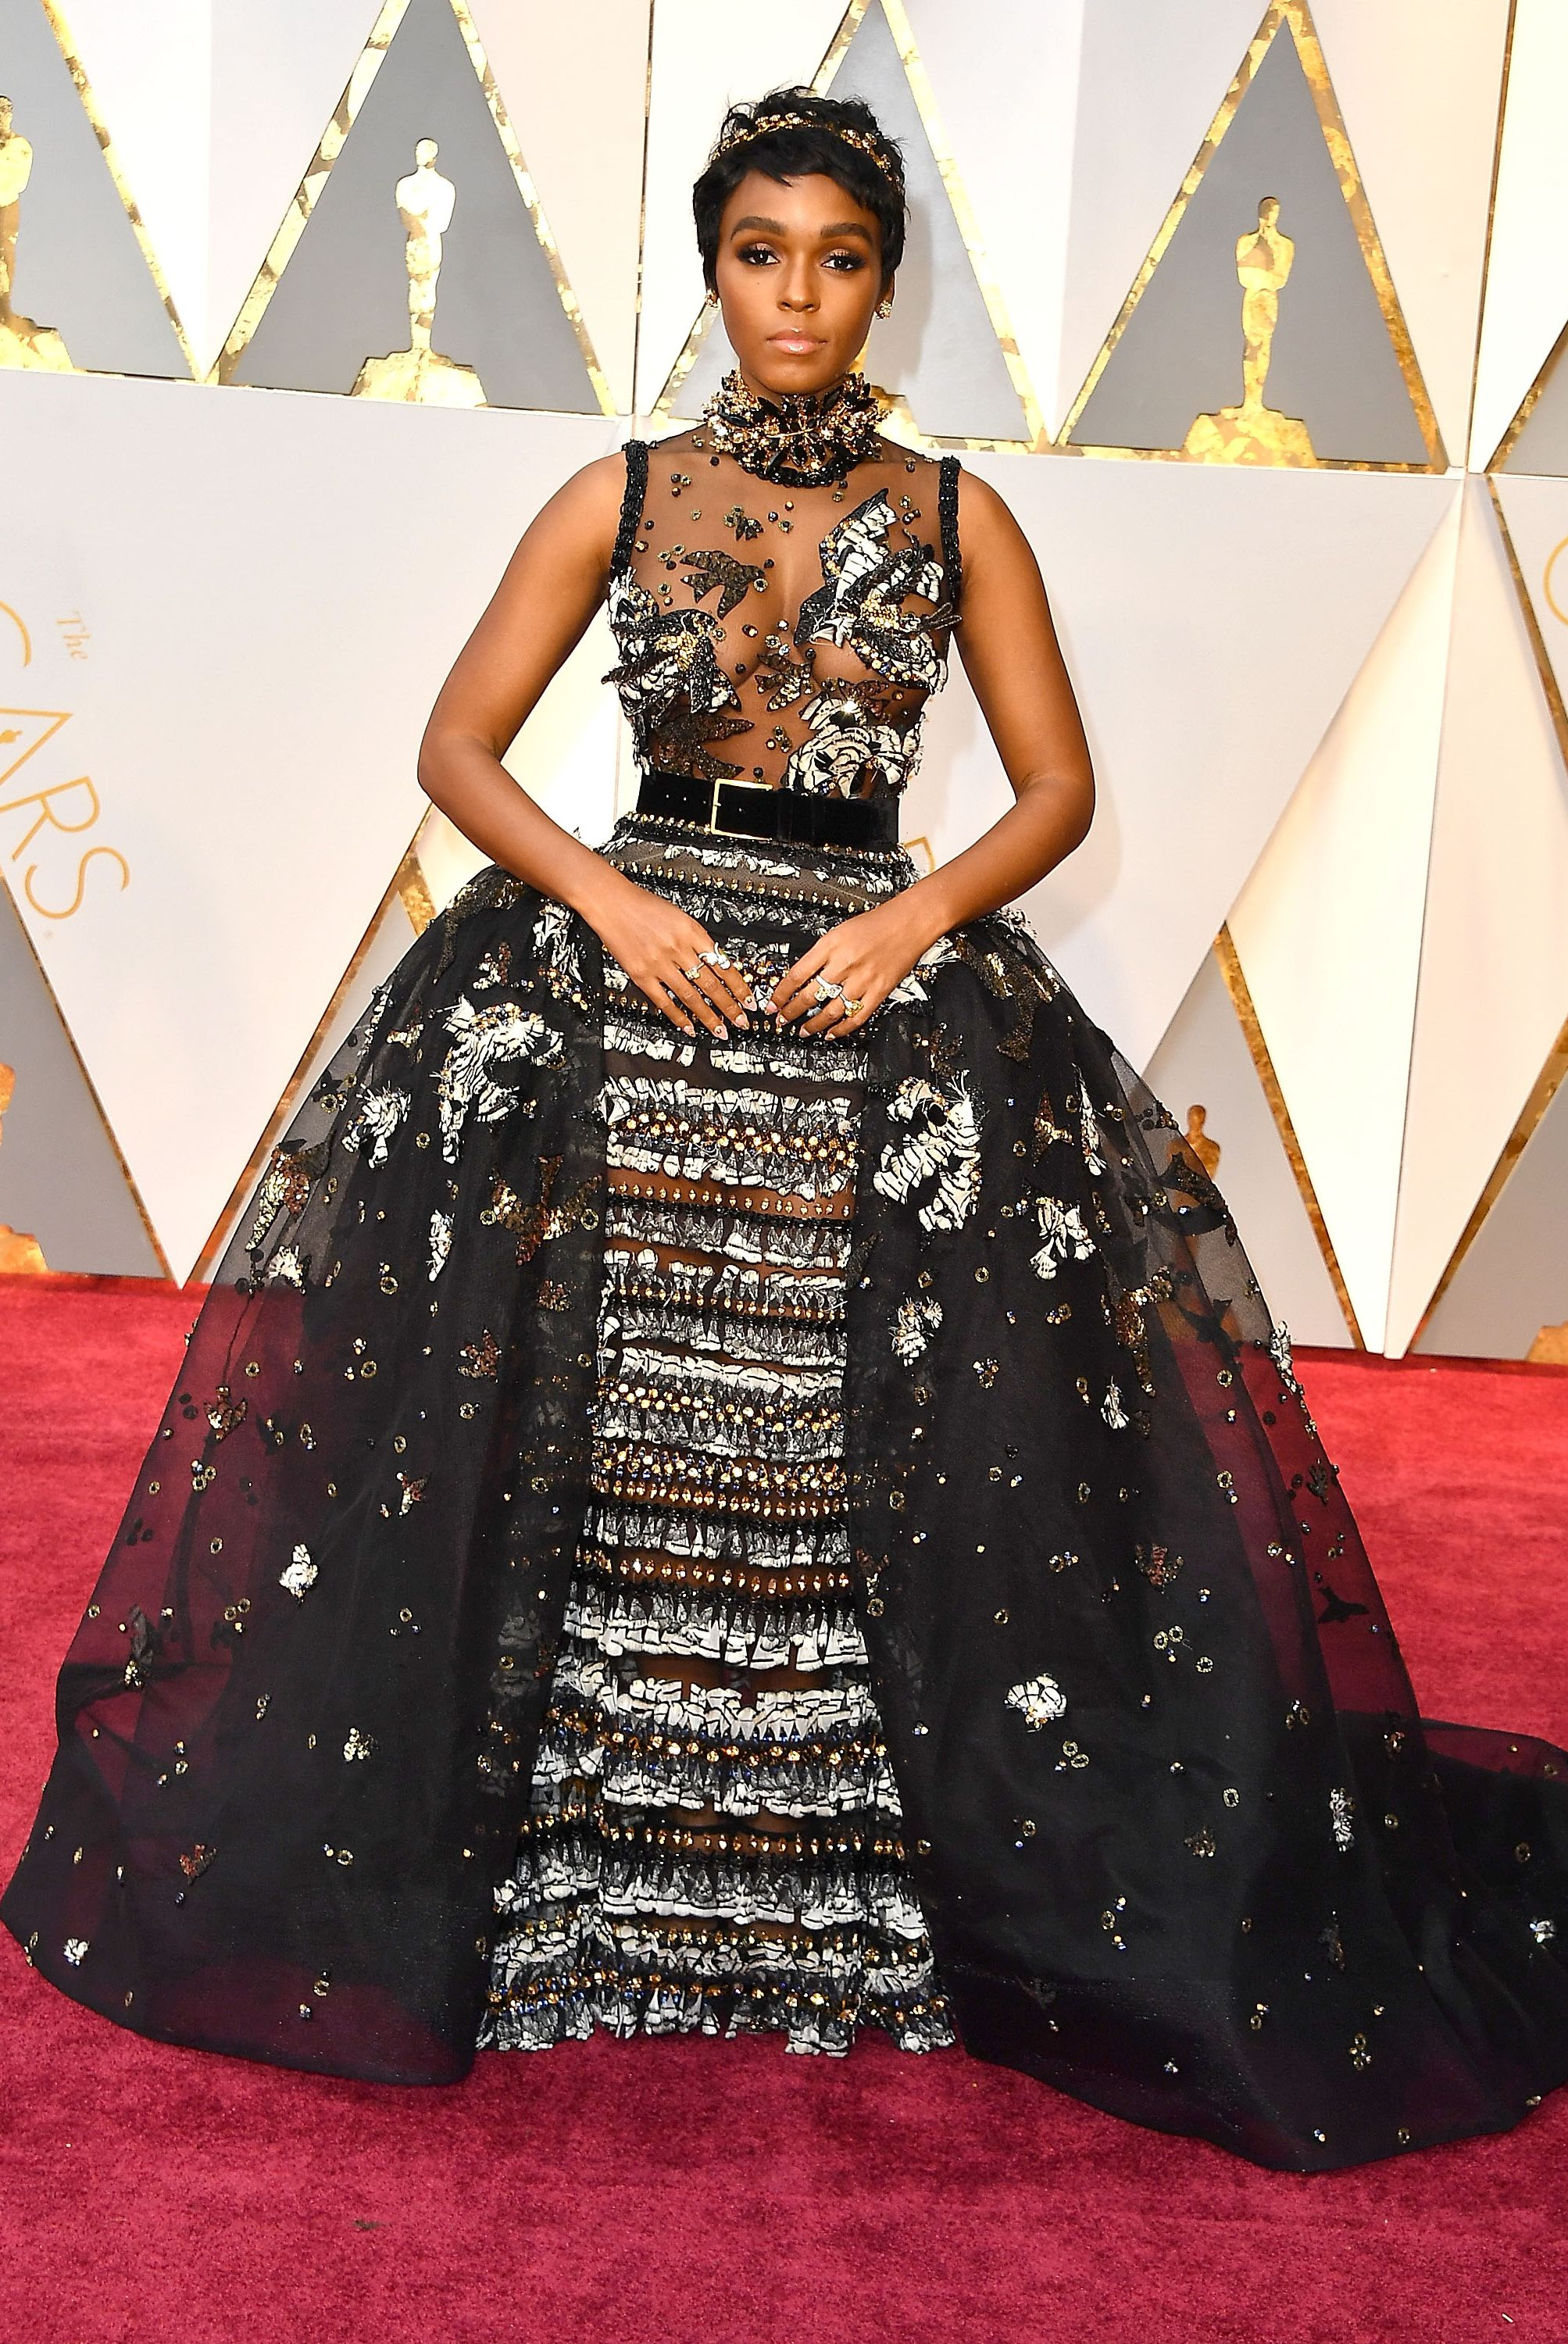 Janelle Monáe, 2017 Please observe the detailing on Janelle Monáe's fairytale Elie Saab Haute Couture gown. It was her first time at the Academy Awards, and she couldn't have nailed the outfit better.